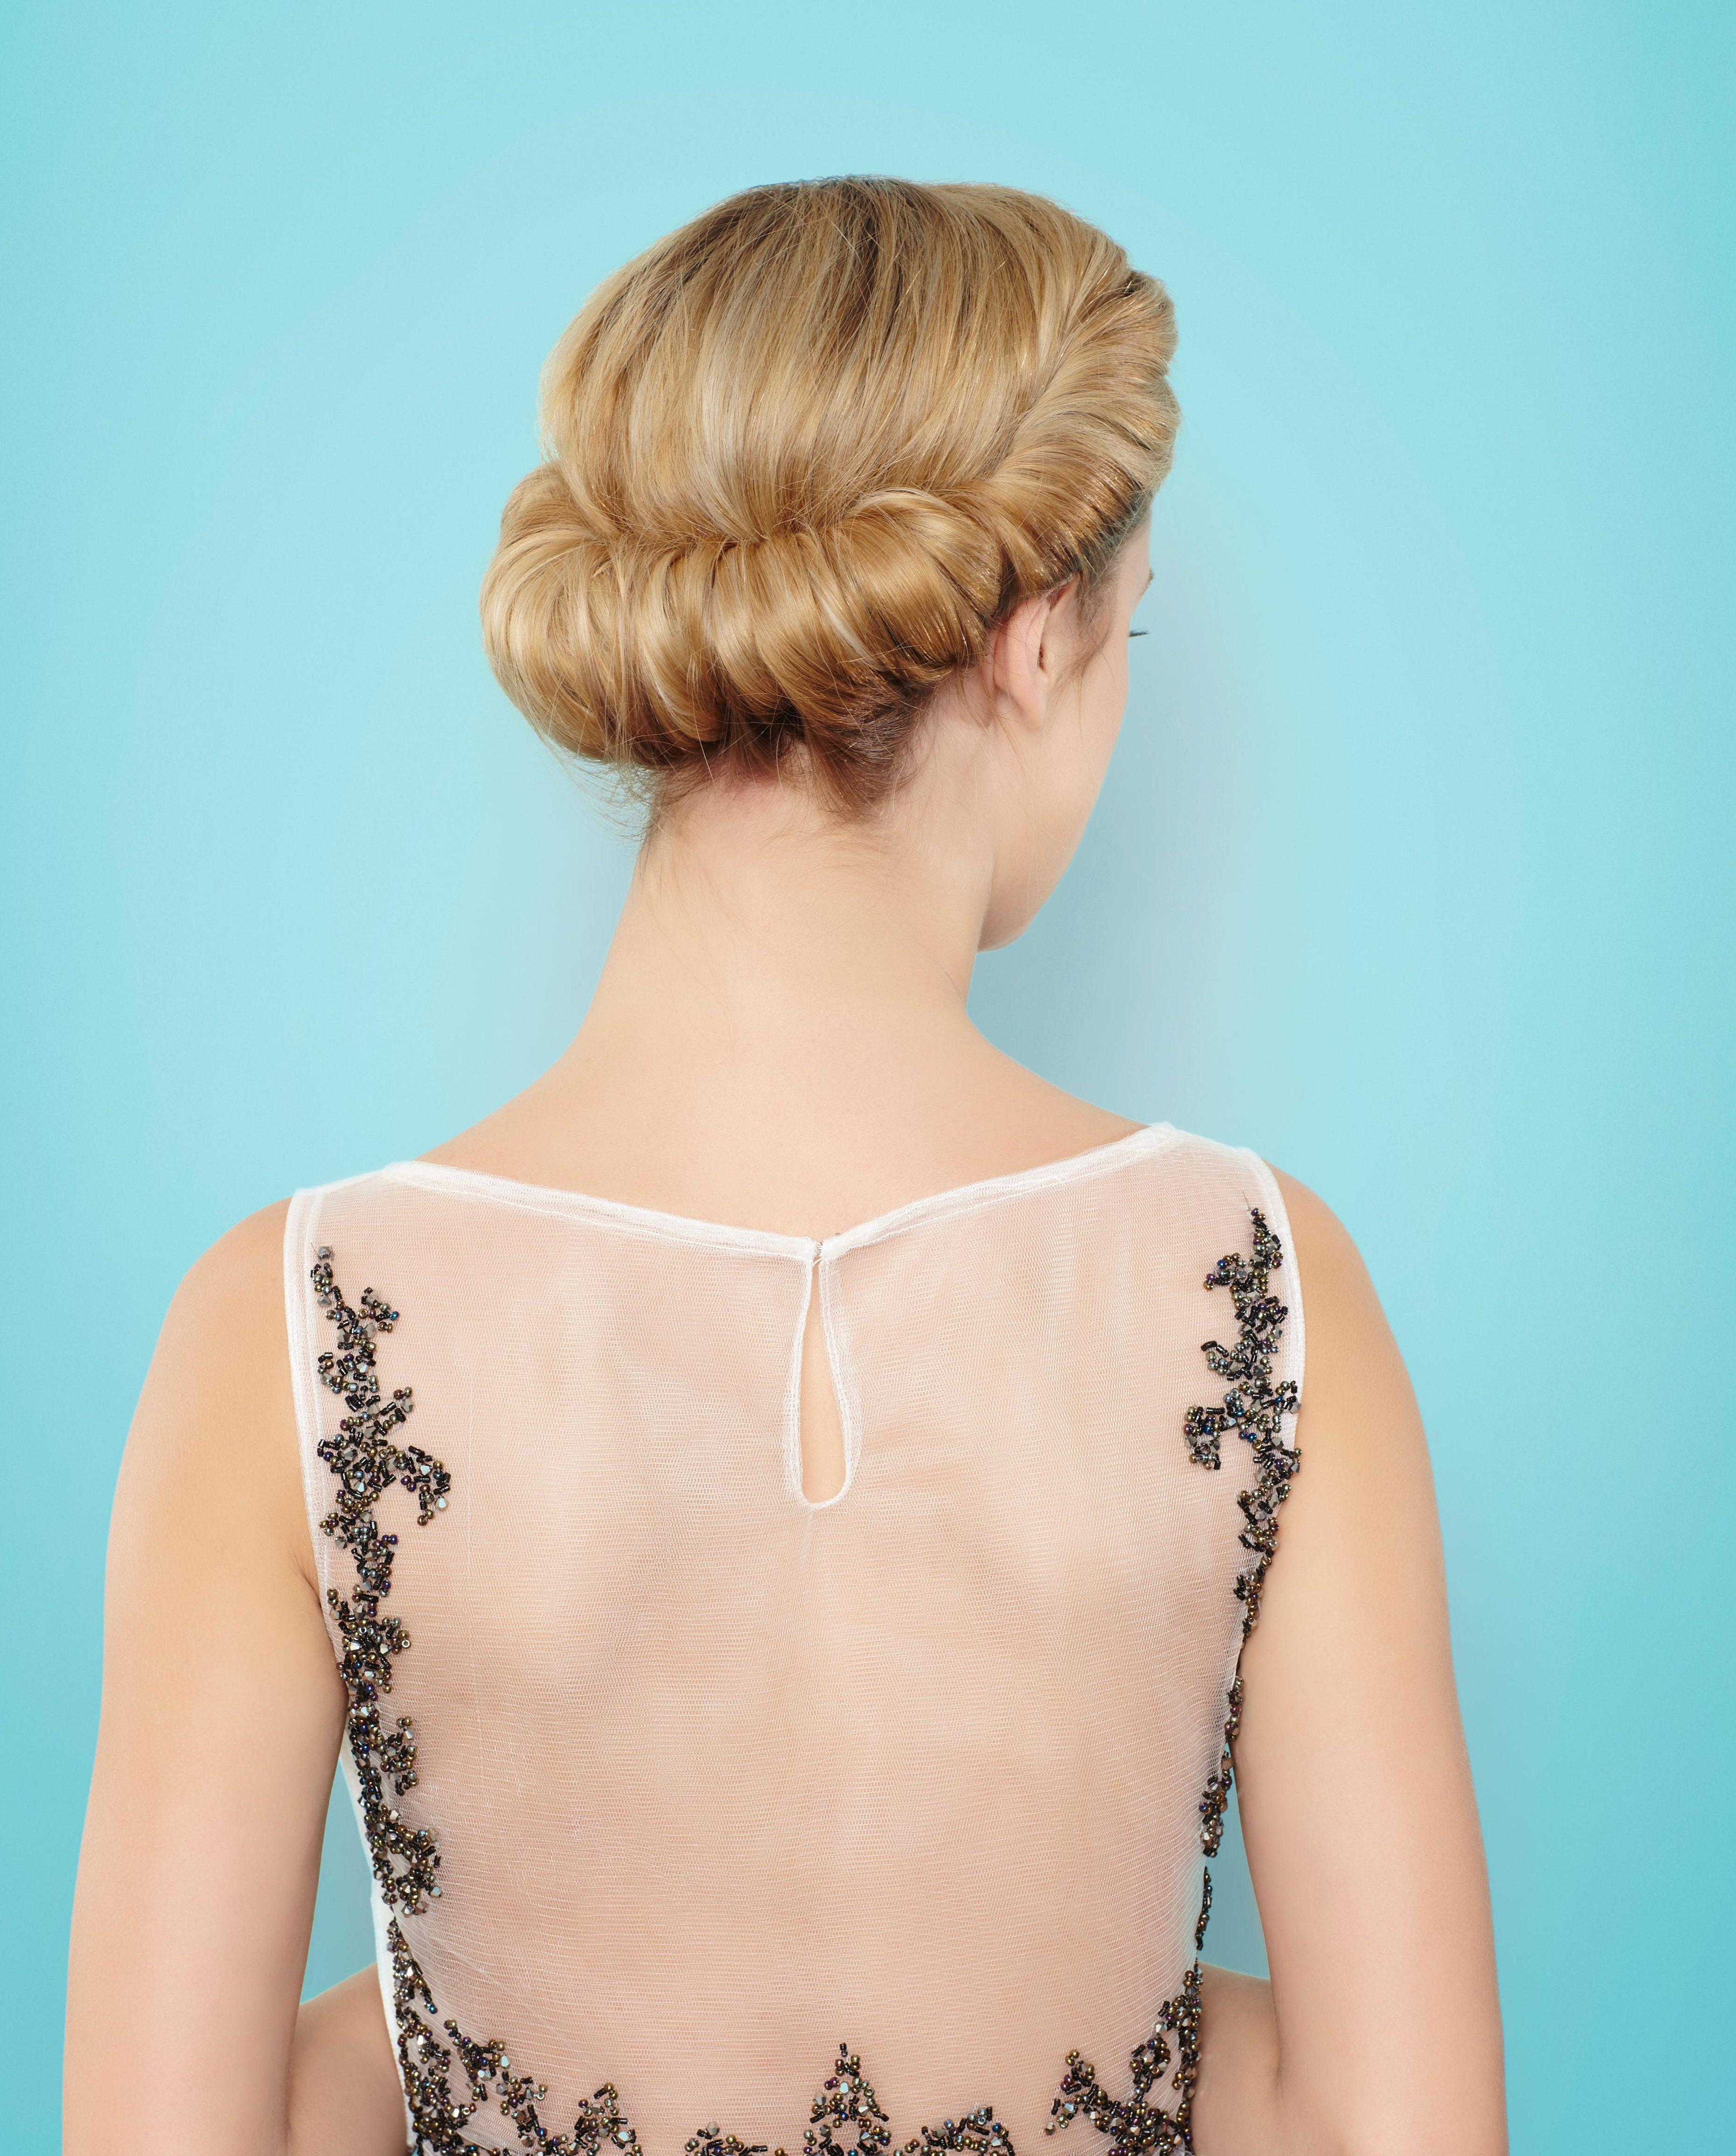 back view final look at blonde model with her hair in a twisted croissant chignon updo